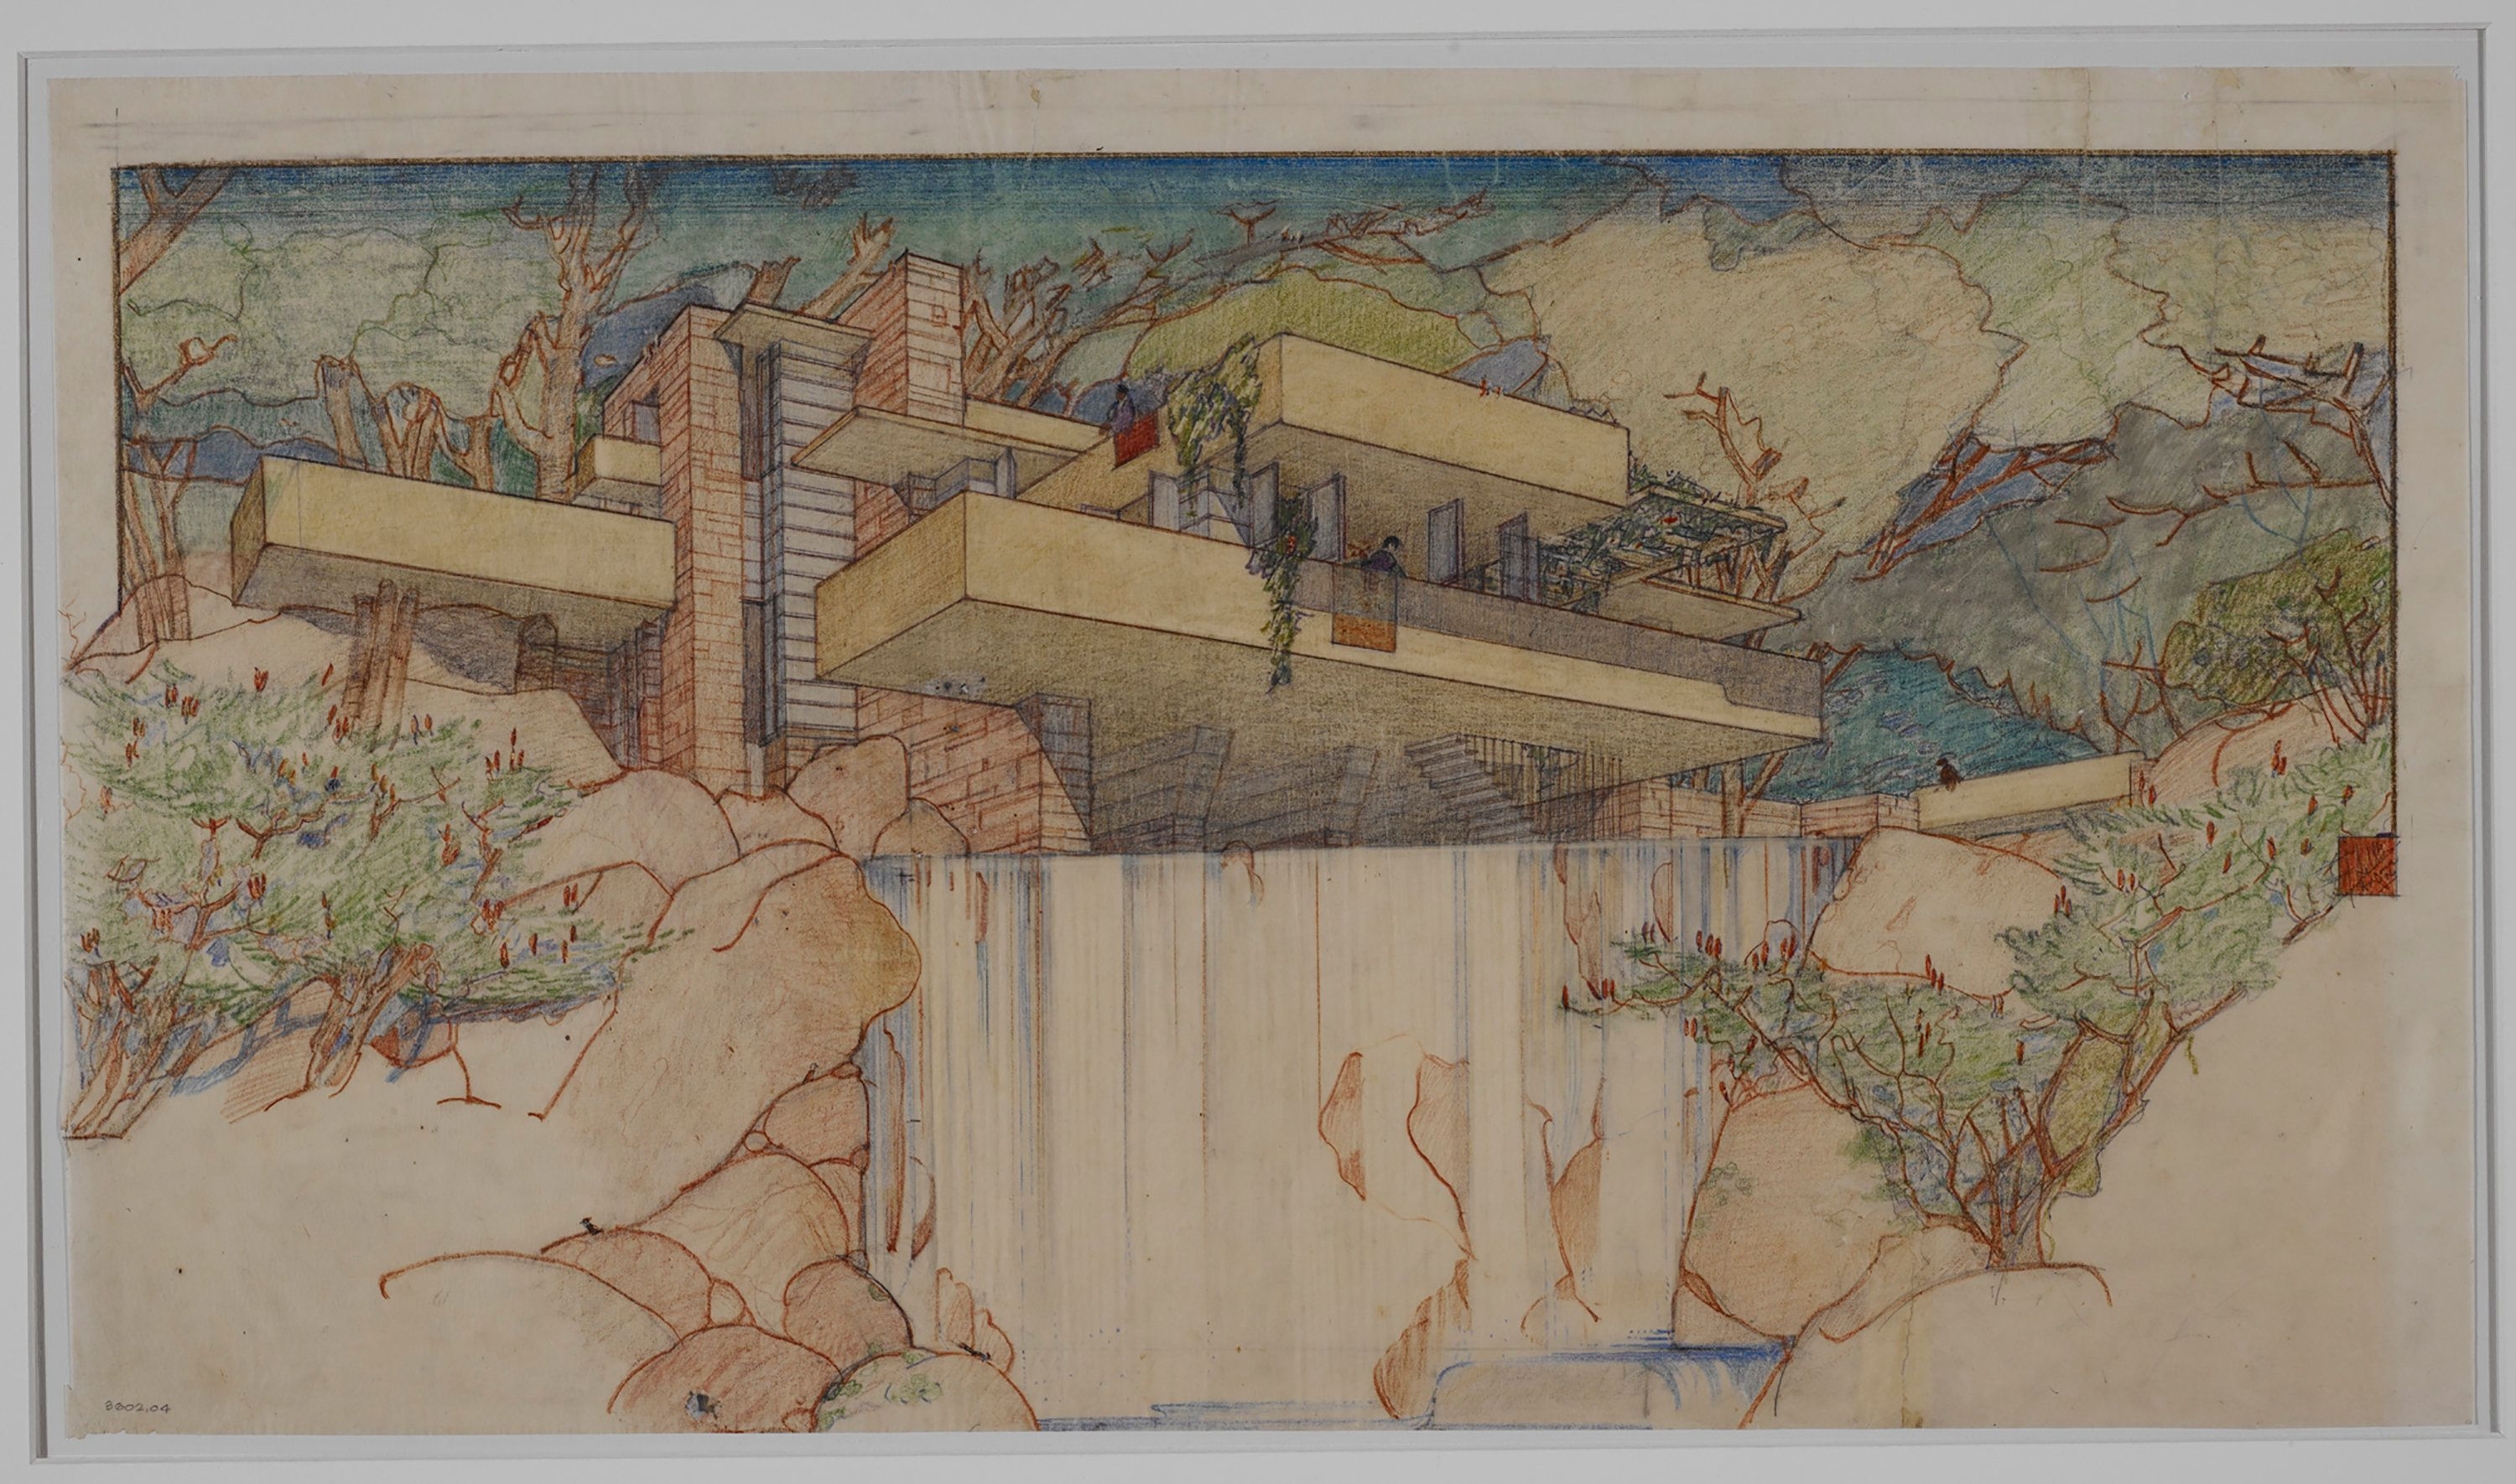 Frank Lloyd Wright's Fallingwater (Kaufmann House) in Mill Run, Pennsylvania (1934–37).